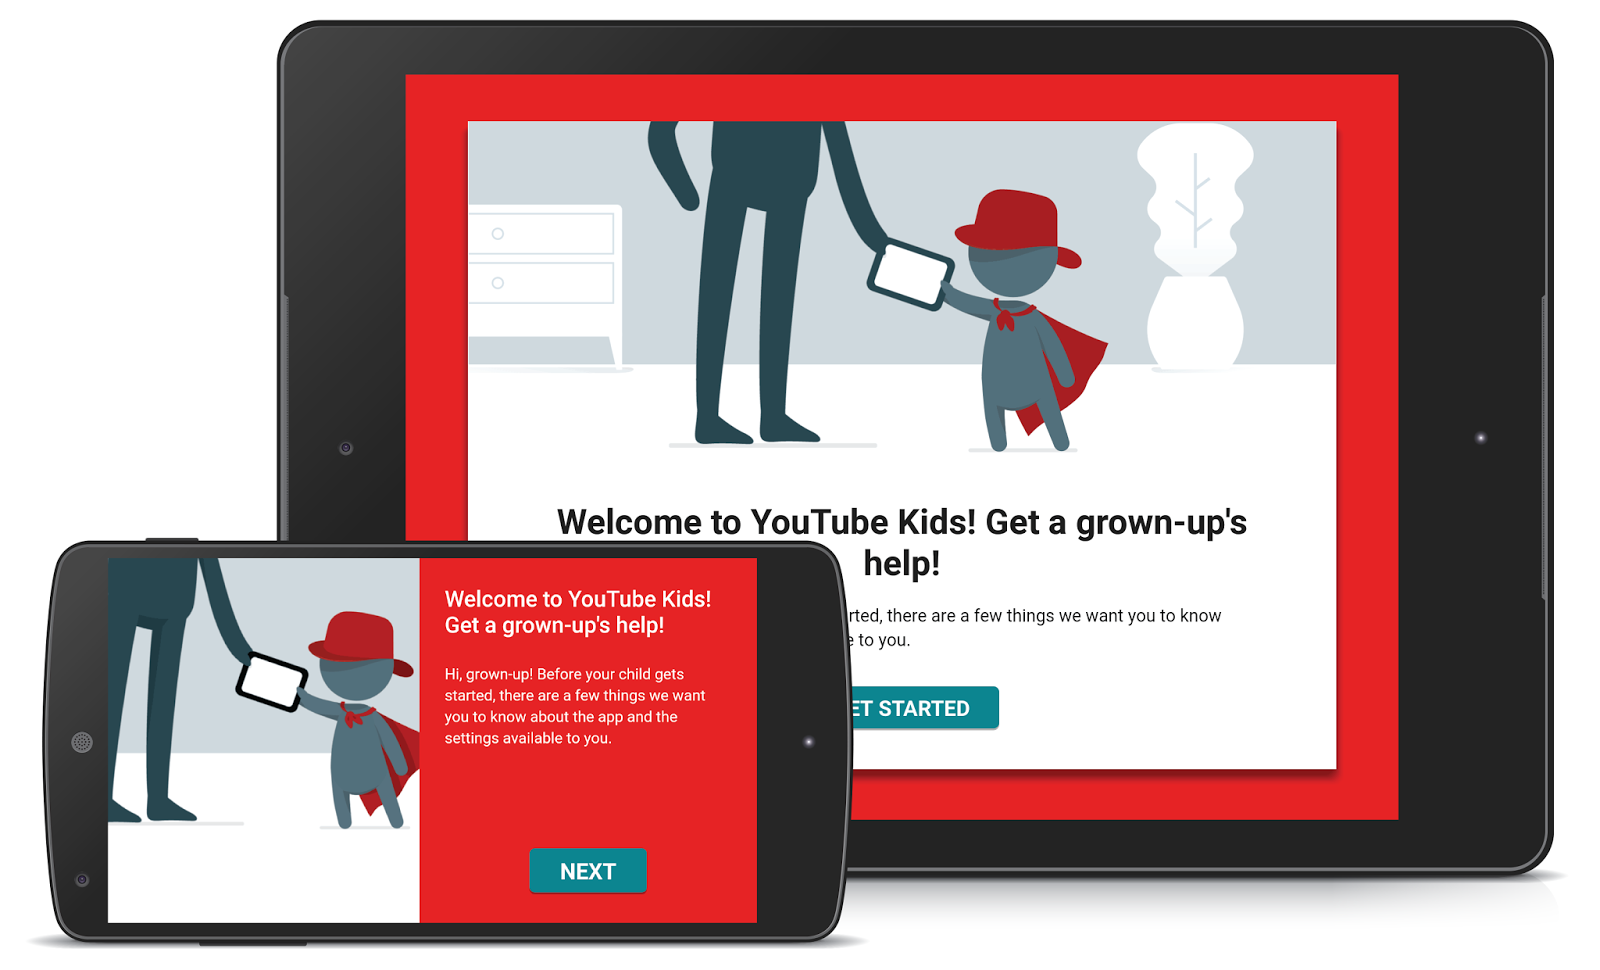 YouTube Kids App Gets Better For Parents And Kids Alike